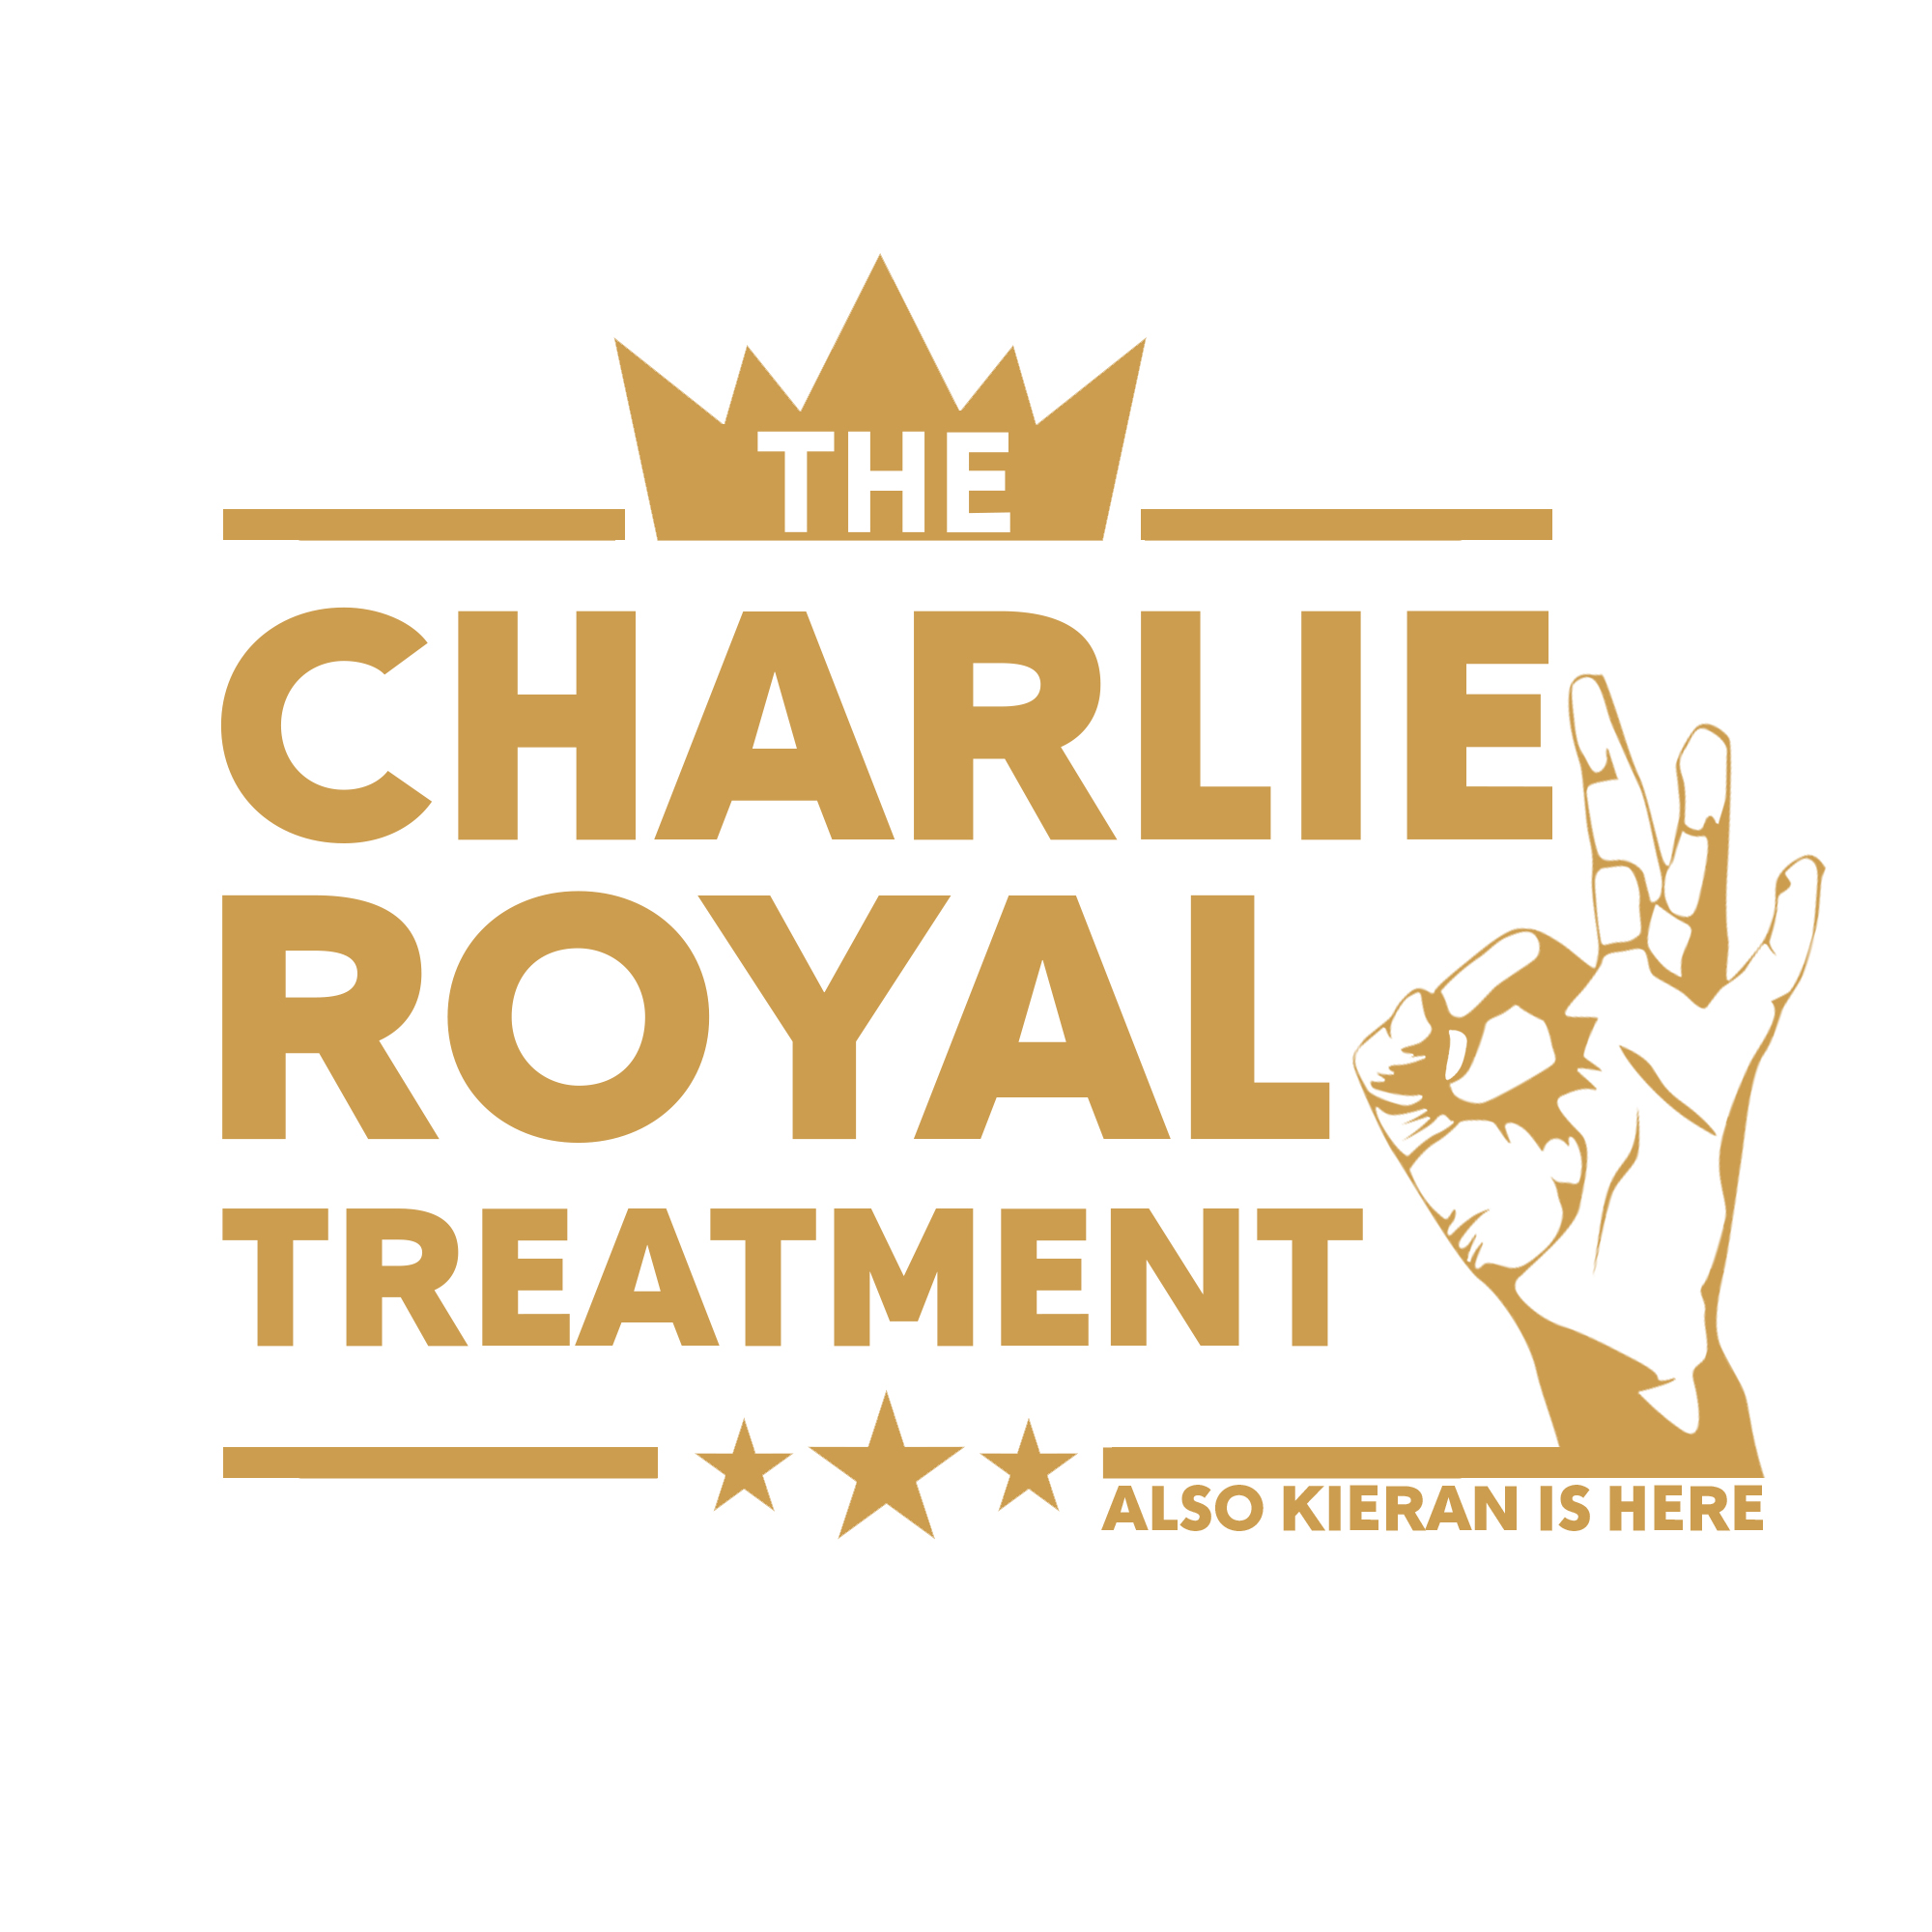 The Charlie Royal Treatment